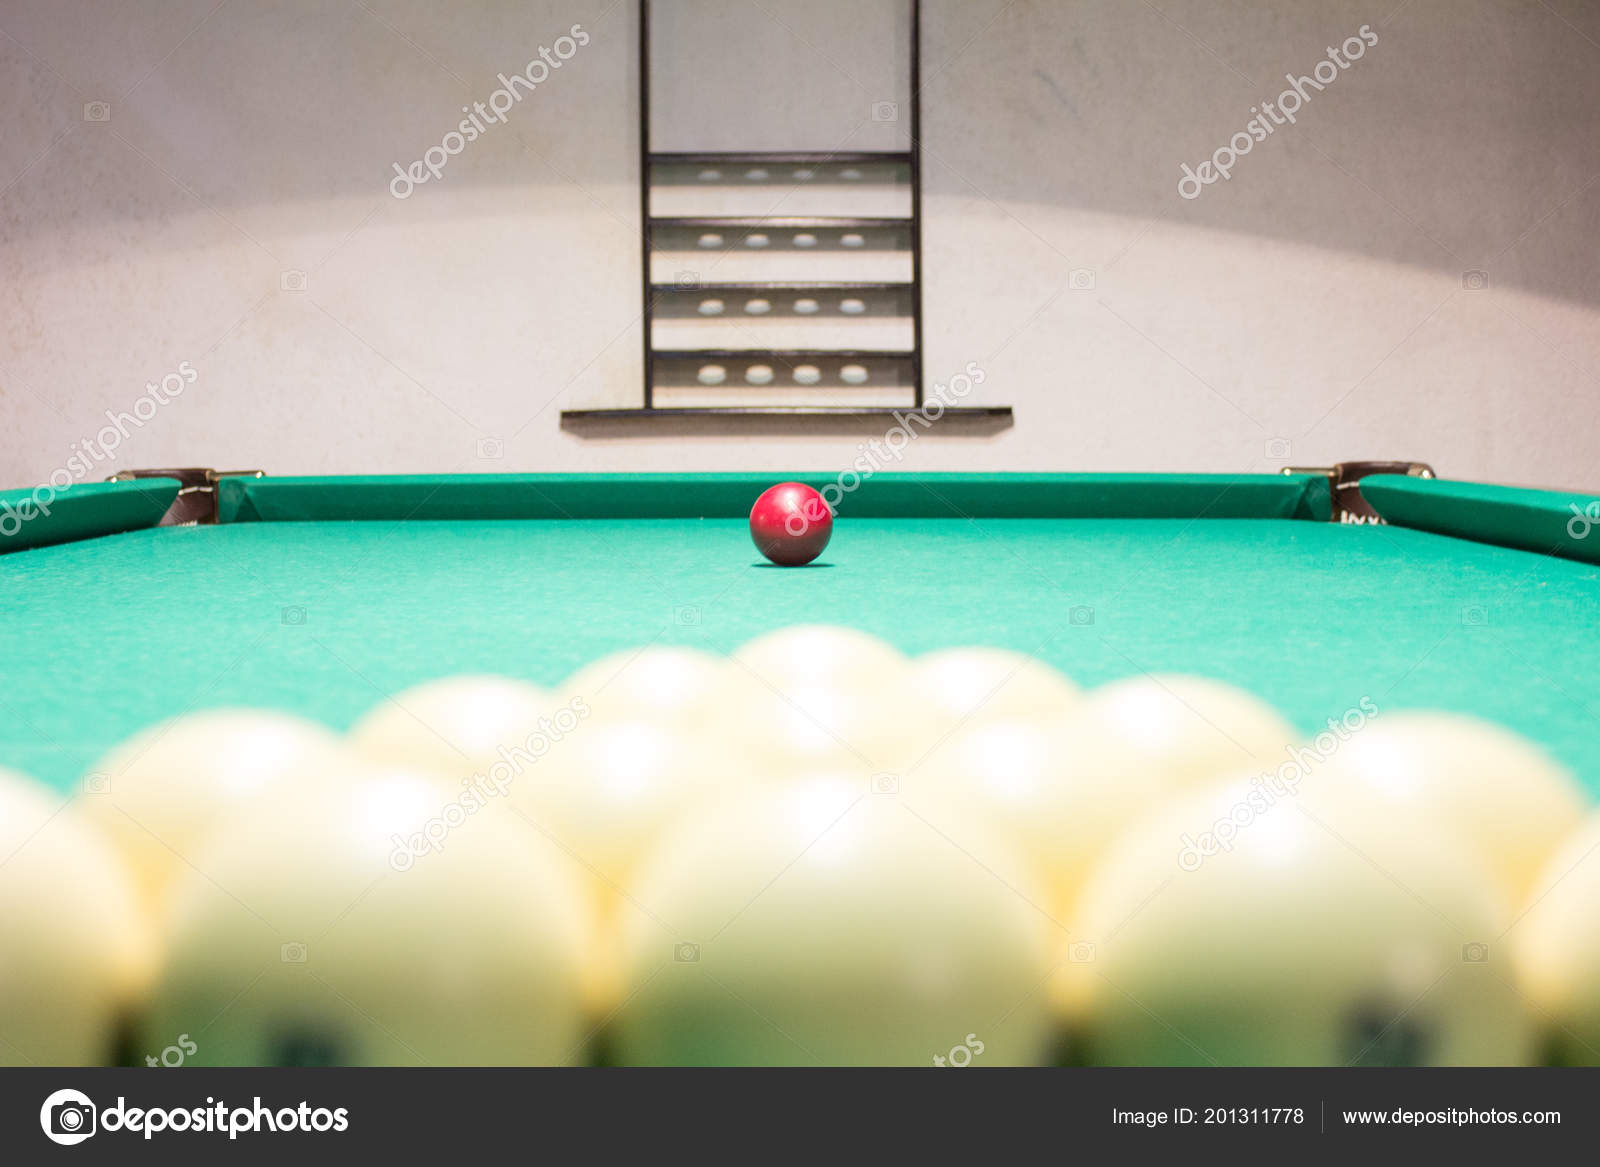 What is the difference between Russian billiards and American billiards